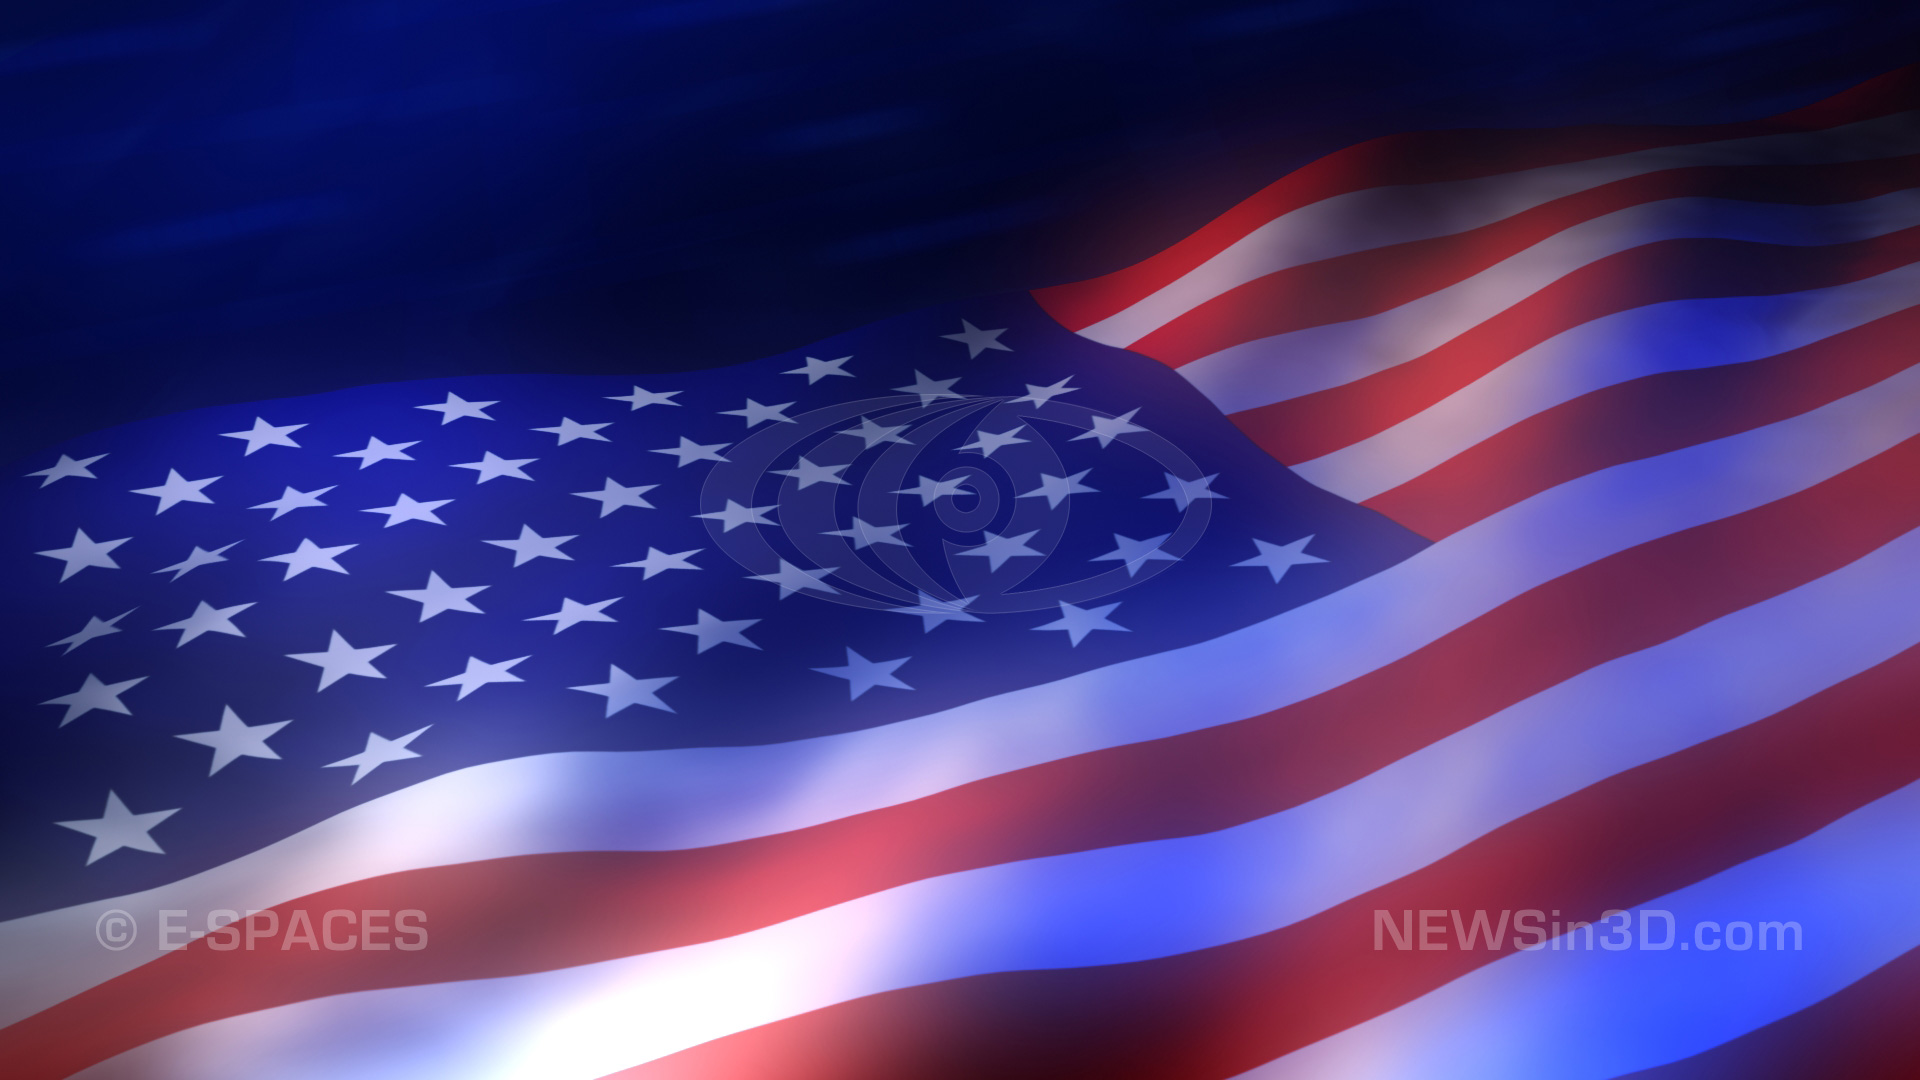 Animated American Flag Background Gif Images amp Pictures 1920x1080